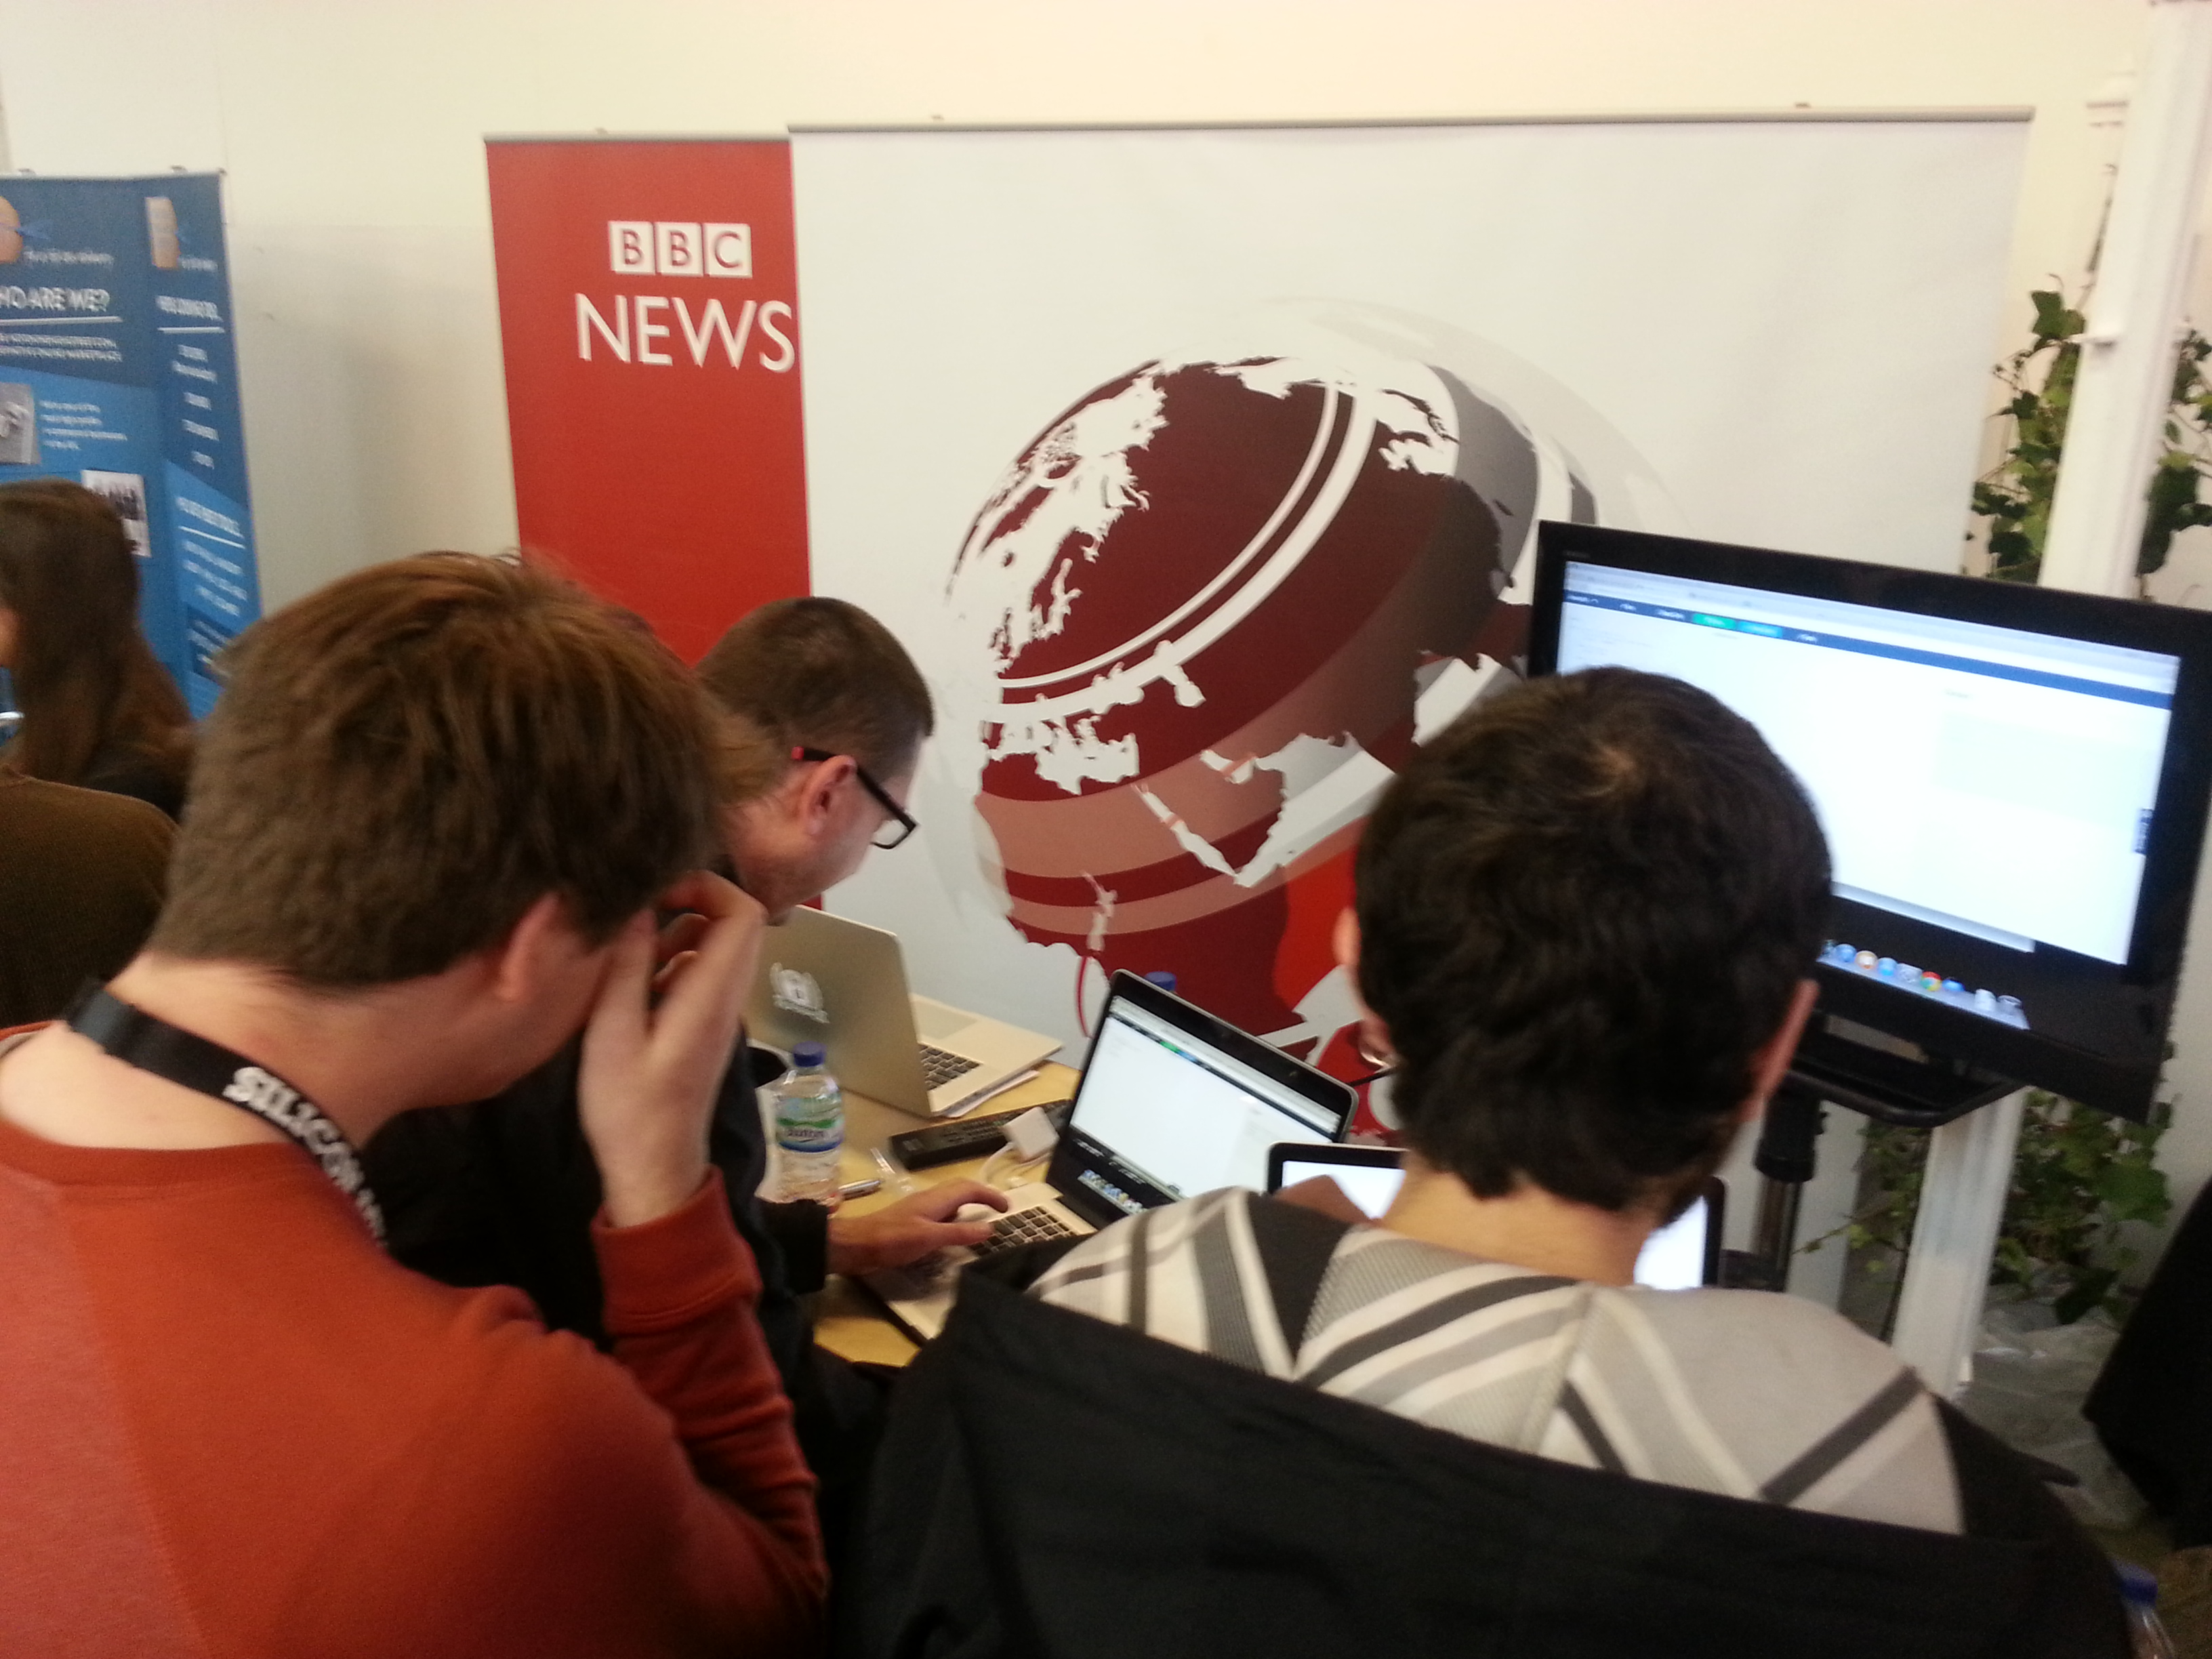 BBC News and Silicon Milk Roundabout